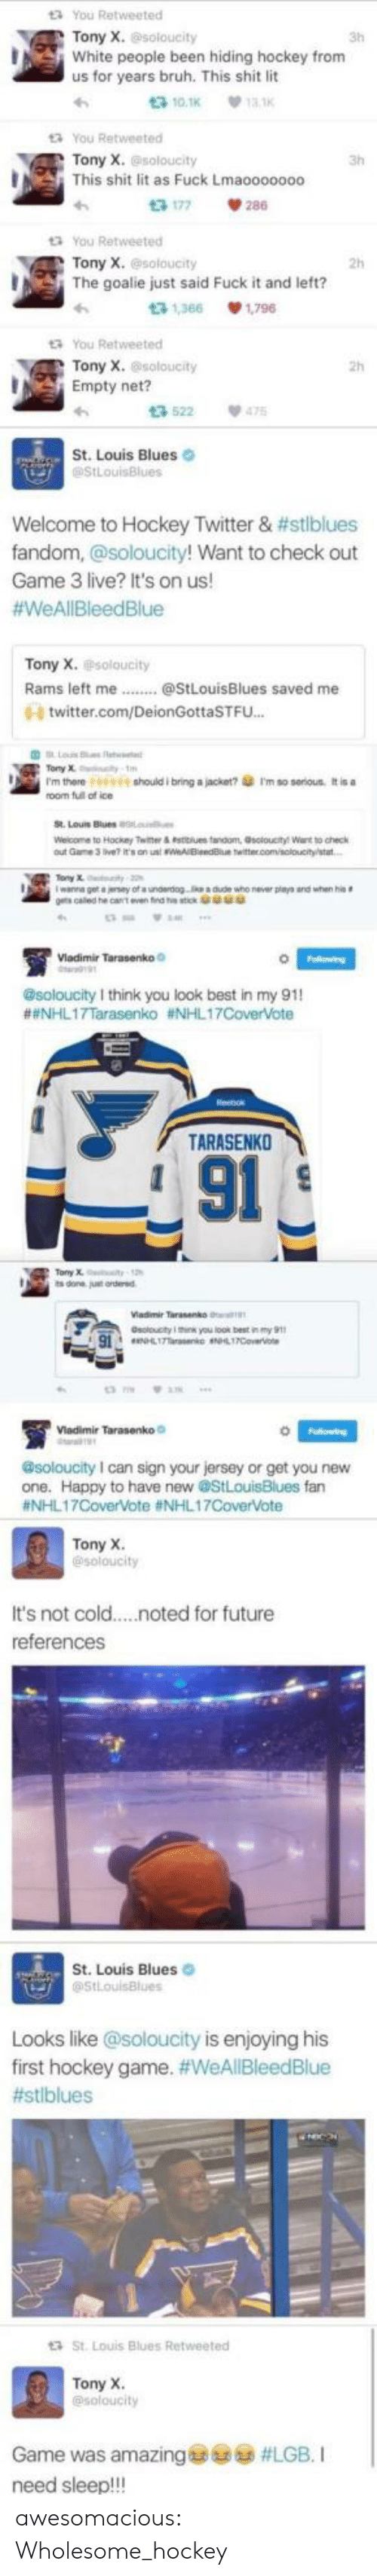 Bruh, Future, and Hockey: t3 You Retweeted  Tony X.soloucity  White people been hiding hockey from  us for years bruh. This shit lit  3h  t3 10.1K  13.1K  t You Retweeted  Tony X. @soloucity  This shit lit as Fuck Lmaooo0000  13 177  tYou Retweeted  Tony X.@soloucity  2h  The goalie just said Fuck it and left?  t3 1,366  1.796  t3 You Retweeted  Tony X. @soloucity  Empty net?  13 522  475  St. Louis Blues  StLouisBlues  Welcome to Hockey Twitter & #stlblues  fandom, @soloucity! Want to check out  Game 3 live? It's on us!  #WeAllBleedBlue  Tony X. soloucity  Rams left me.  @StLouisBlues saved me  0- twitter.com/DeionGottaSTFU...  Falowing  esoloucity I think you oo my 91  #NHL17Tarasenko #NHL17CoverVote  TARASENKO  91  @soloucity I can sign your jersey of get you hew  fan  #NHL17CoverVote #NHL17CoverVote  Tony X  @soloucity  It's not cold  .noted for future  references  St. Louis Blues  @StLouisBlues  Looks like @soloucity is enjoying his  first hockey game. #WeAllBleedBlue  #stlblues  St. Louis Blues Retweeted  Tony X.  @soloucity  Game was amazing  #LGB. I  need sleep!!! awesomacious:  Wholesome_hockey